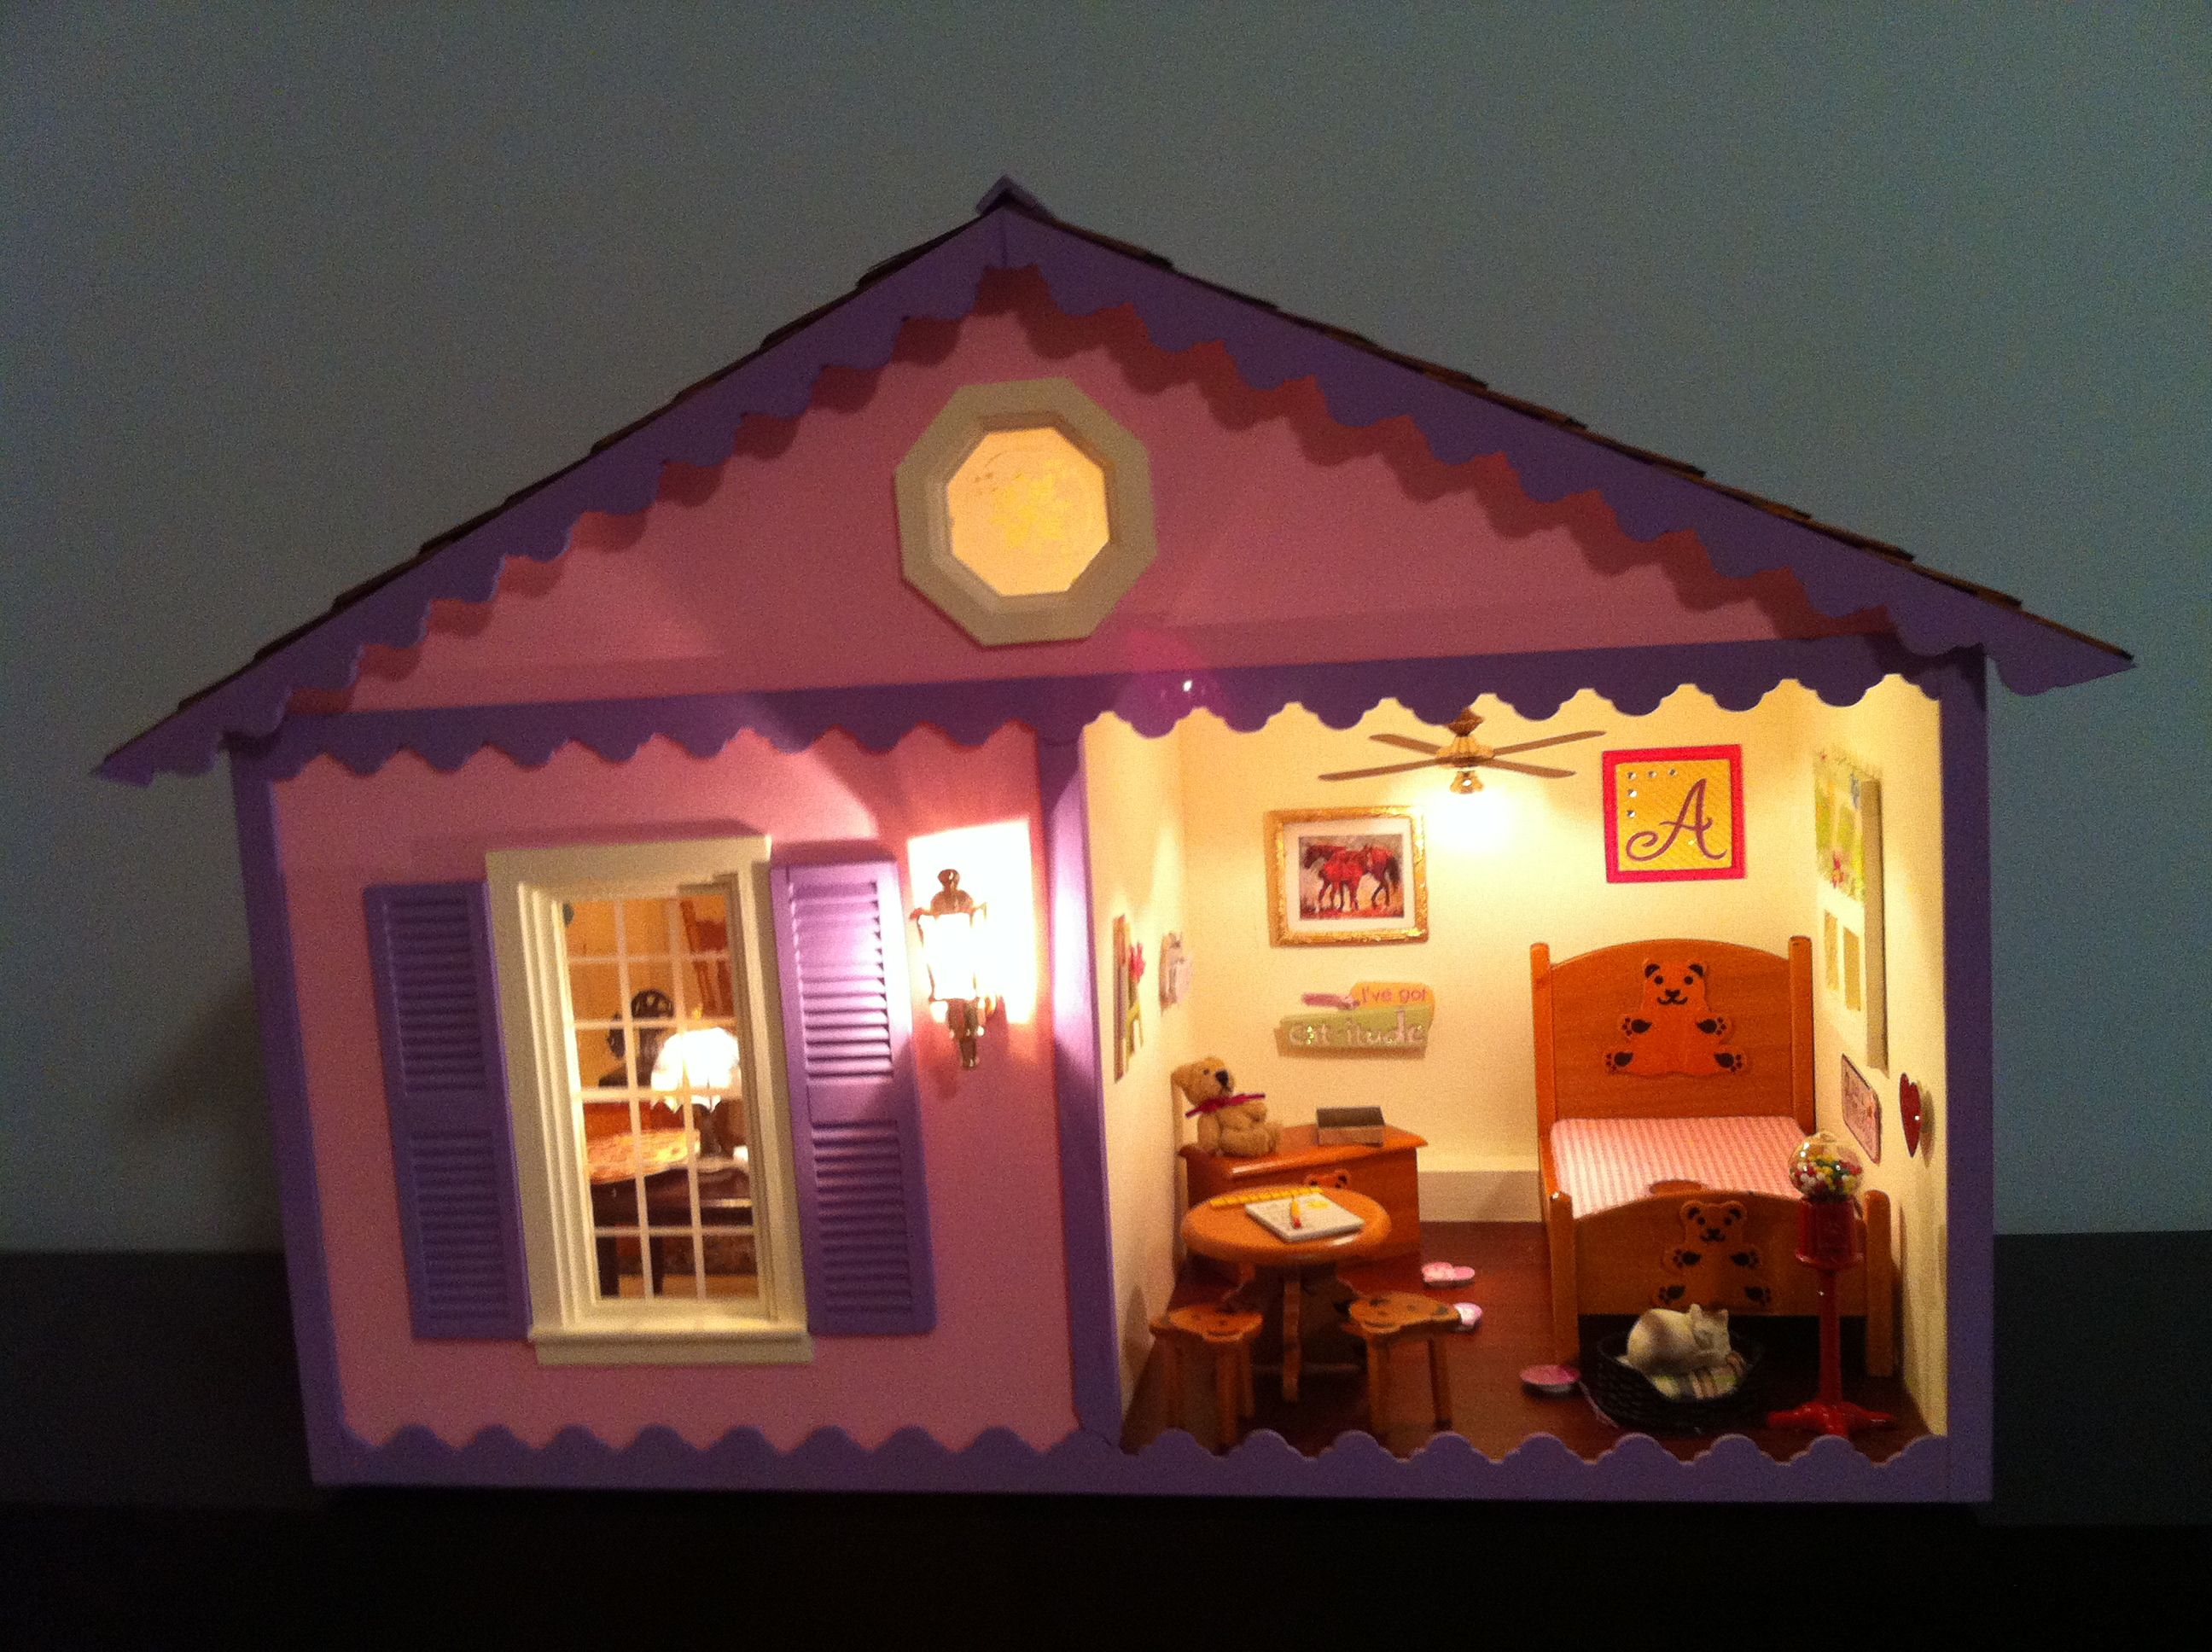 Cute Little Dollhouse Night Light Supplies Bought At Hobby Lobby So Adorable Easy Diy Crafts Easy Crafts Girls Playhouse